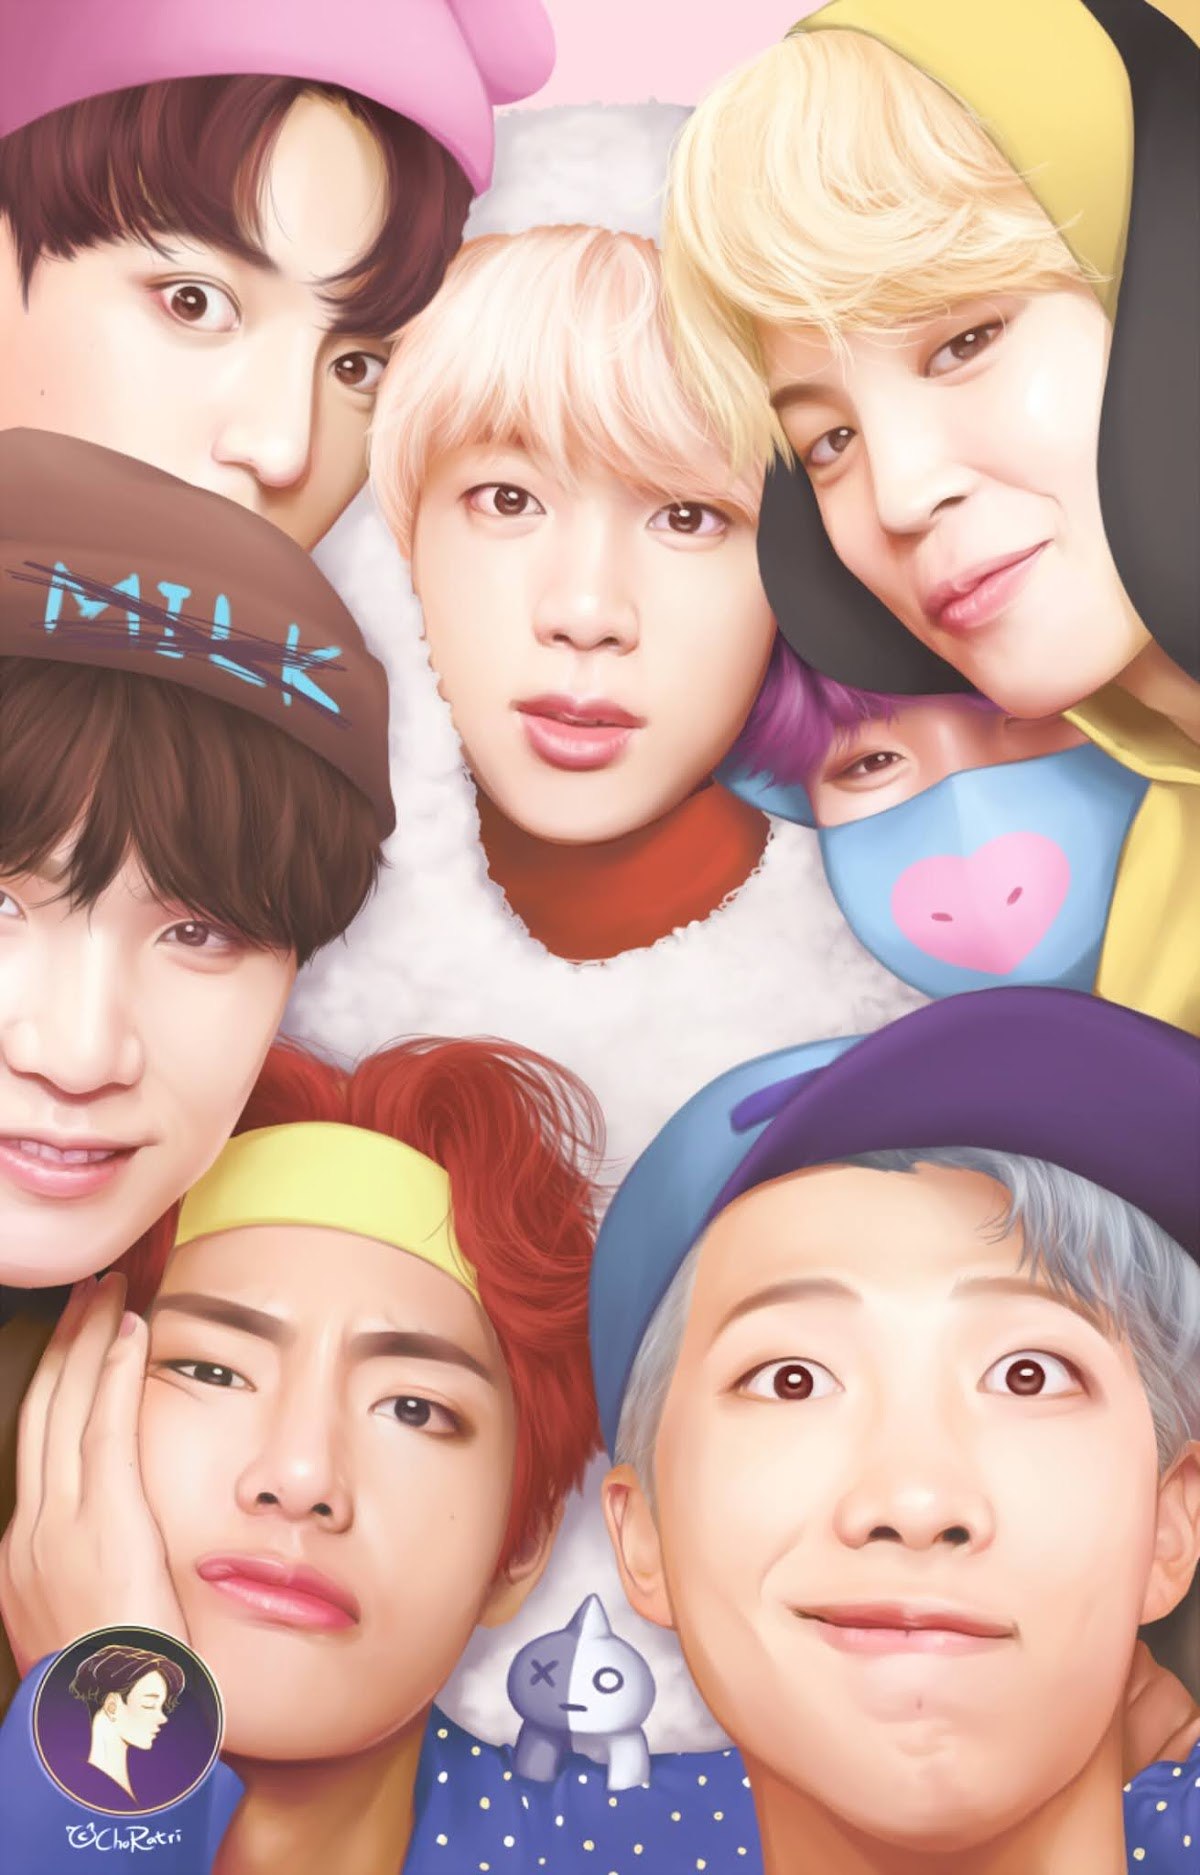 Download Wallpaper BTS as BT21 Wallpaper HD Free